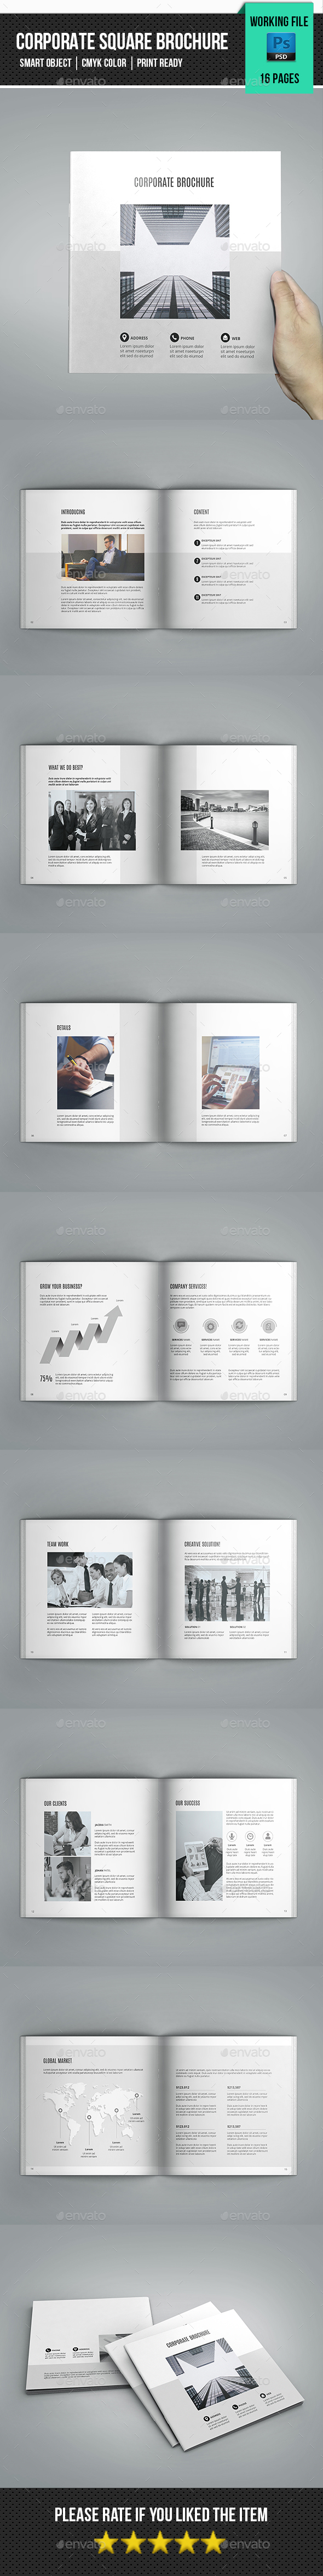 Minimal Corporate Square Brochure-V89 - Corporate Brochures